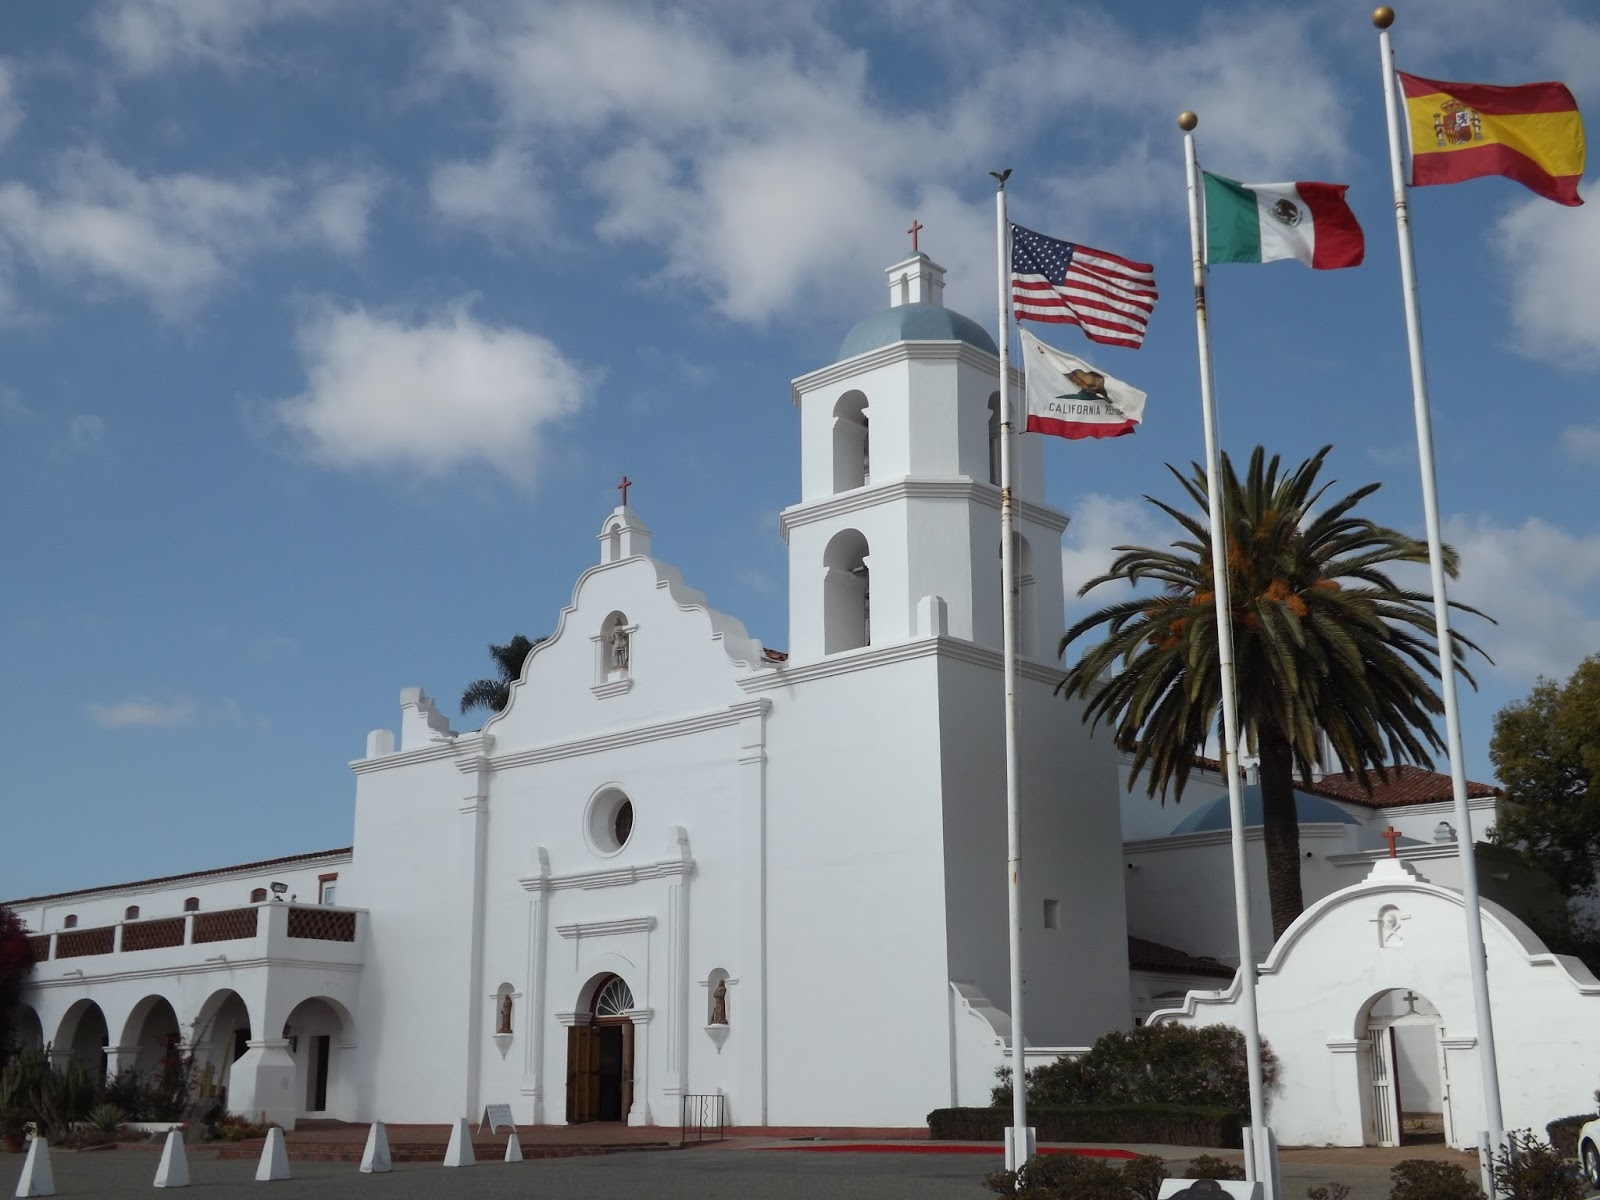 The Centauride Mission San Luis Rey The King Of The Missions